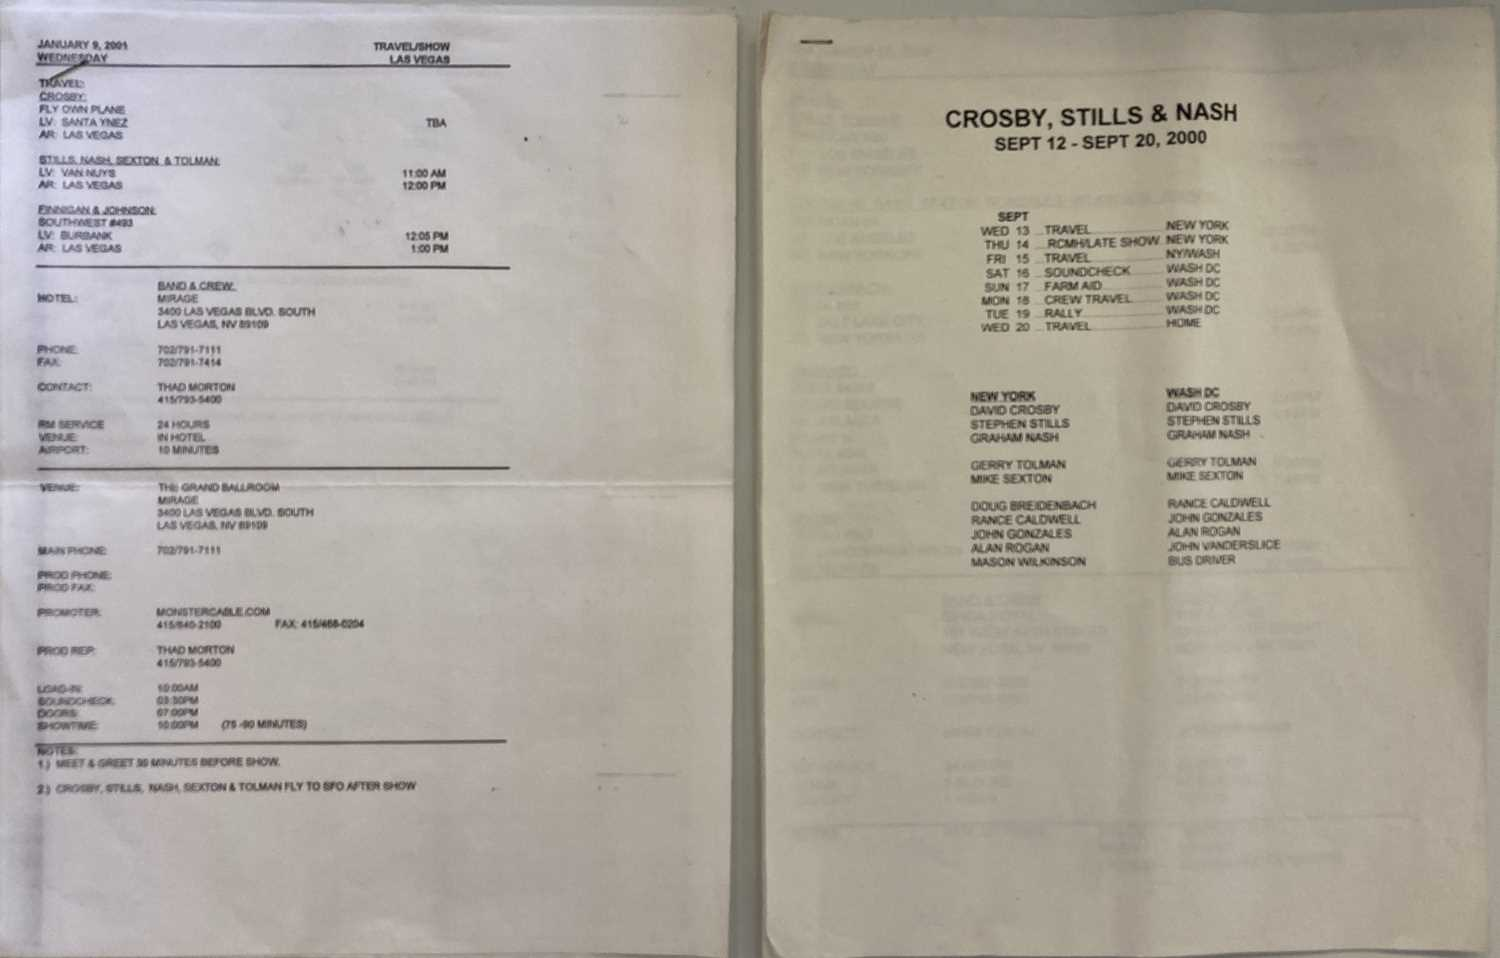 CROSBY, STILLS, NASH AND YOUNG TOUR ITINERARIES. - Image 2 of 2